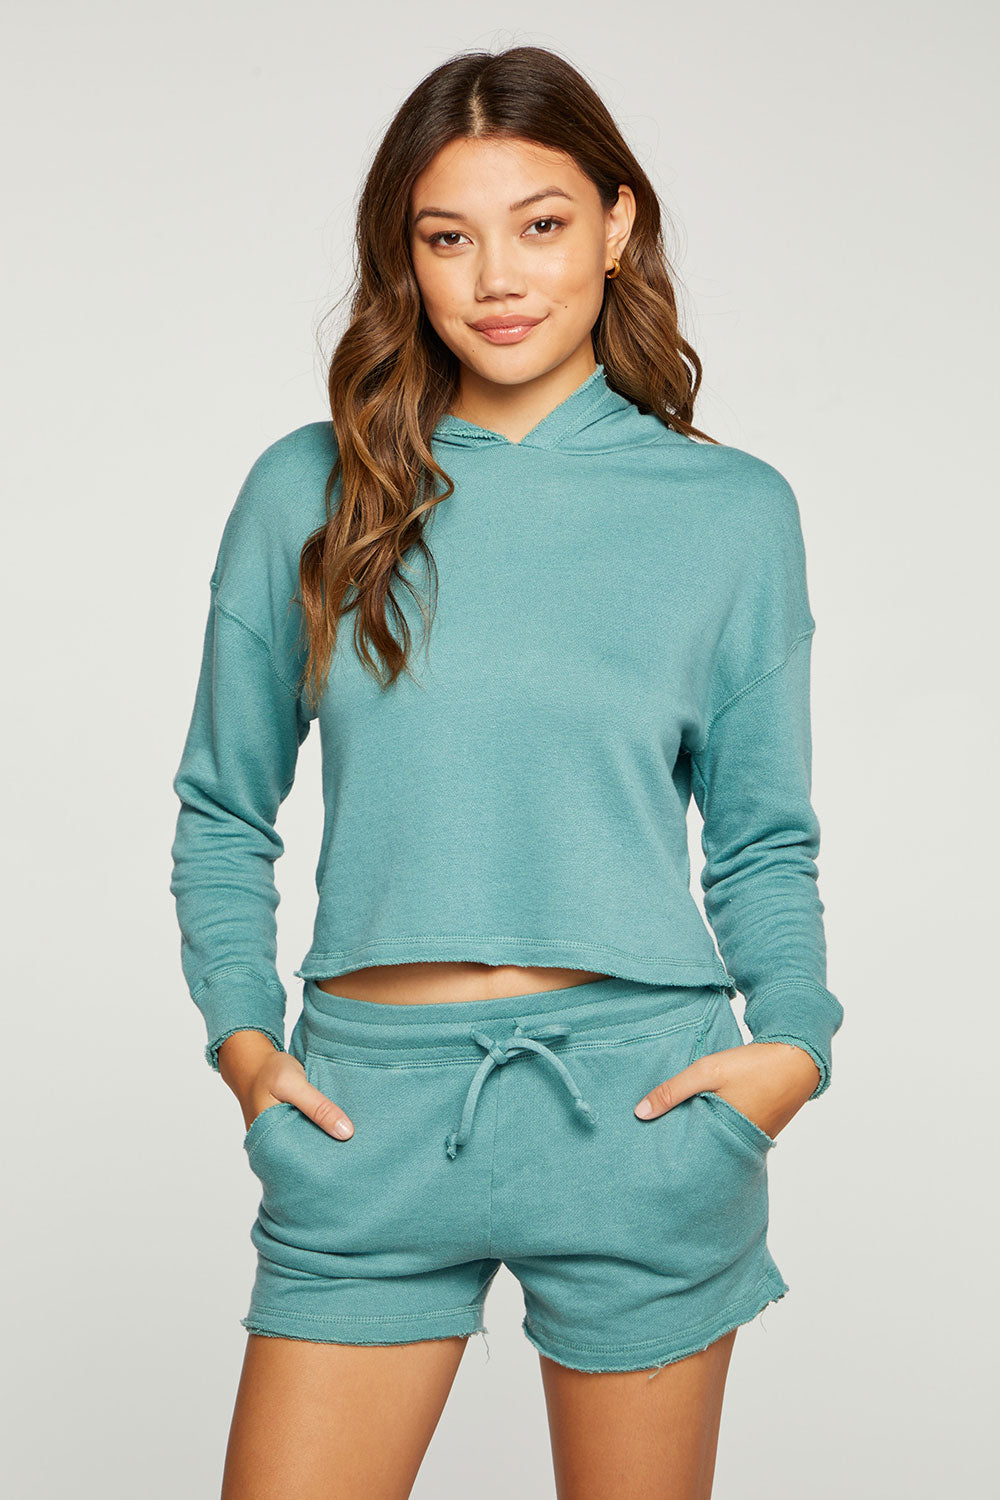 Linen French Terry Cropped Long Sleeve Pullover Hoodie with Raw Edges WOMENS - chaserbrand